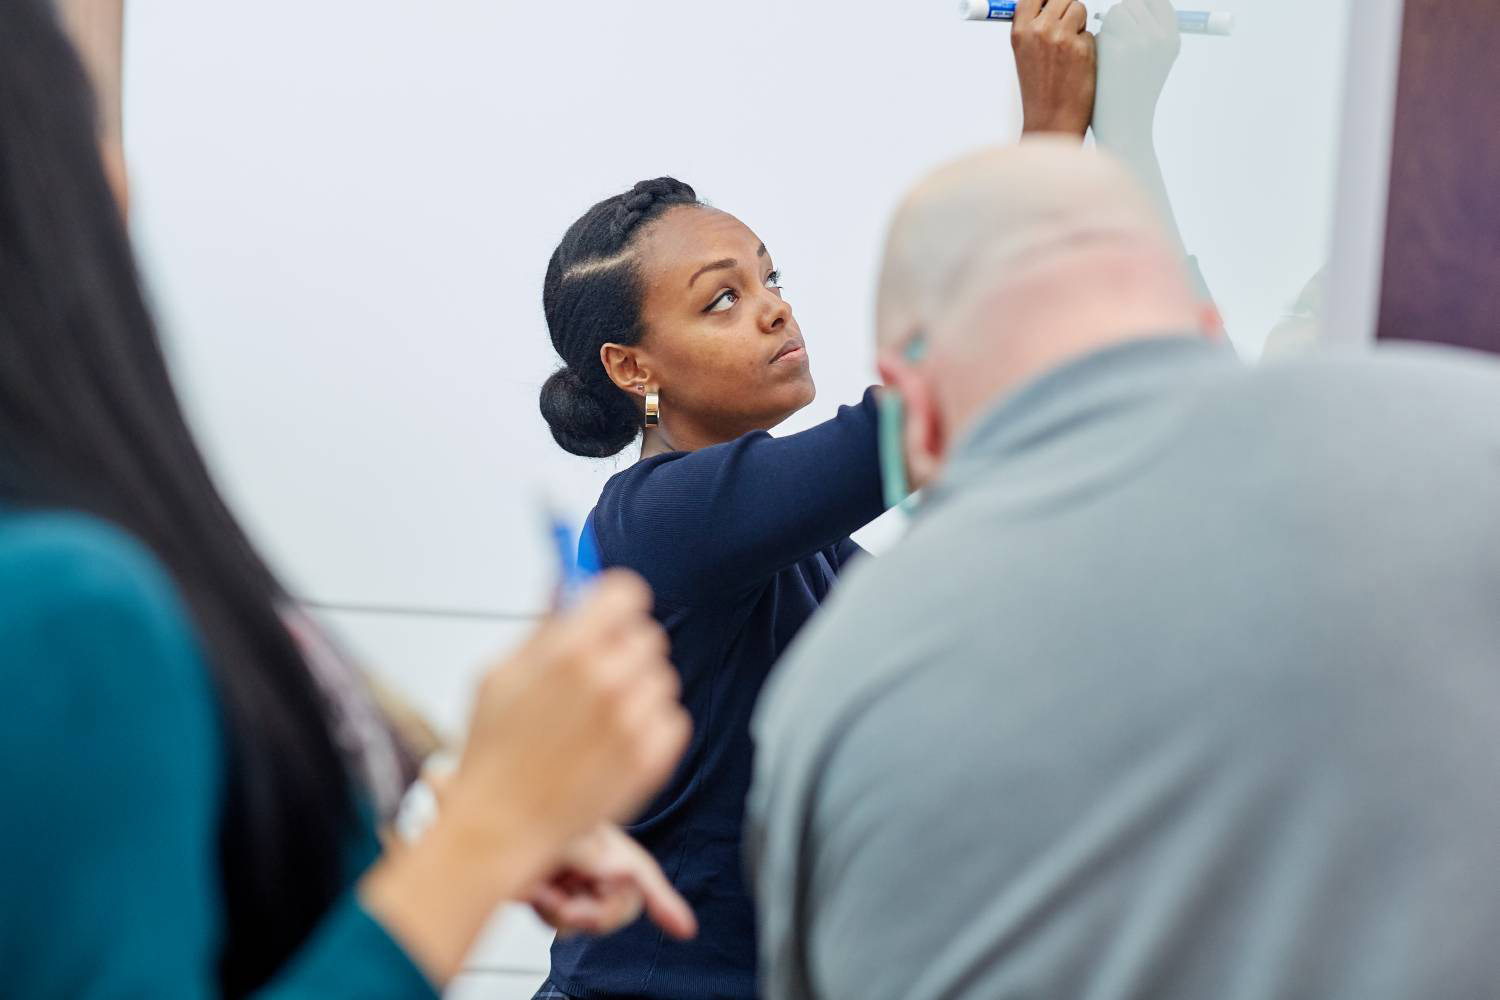 Applying analytics to help tackle racial disparity, members of the Black Initiatives Group, a diversity and inclusion initiative at SAS, jumped at the chance to help close the widening racial wealth gap.